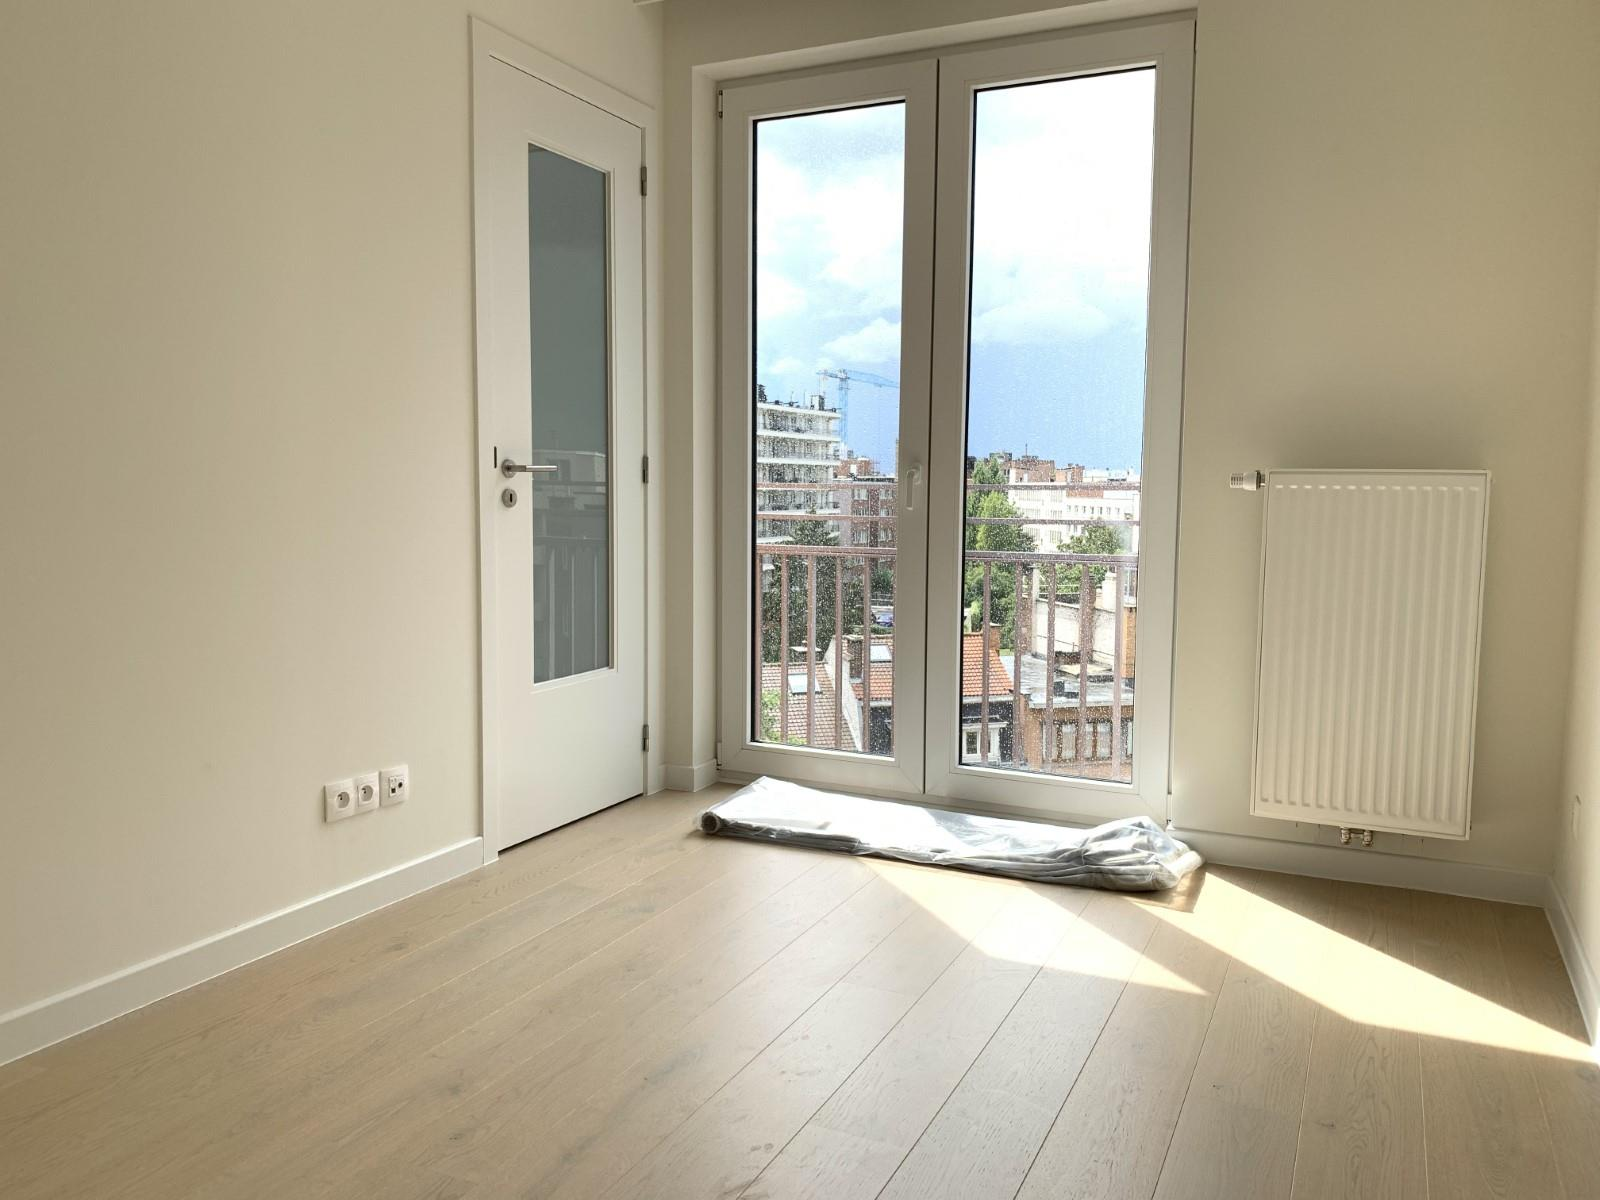 Appartement exceptionnel - Schaerbeek - #3964914-16